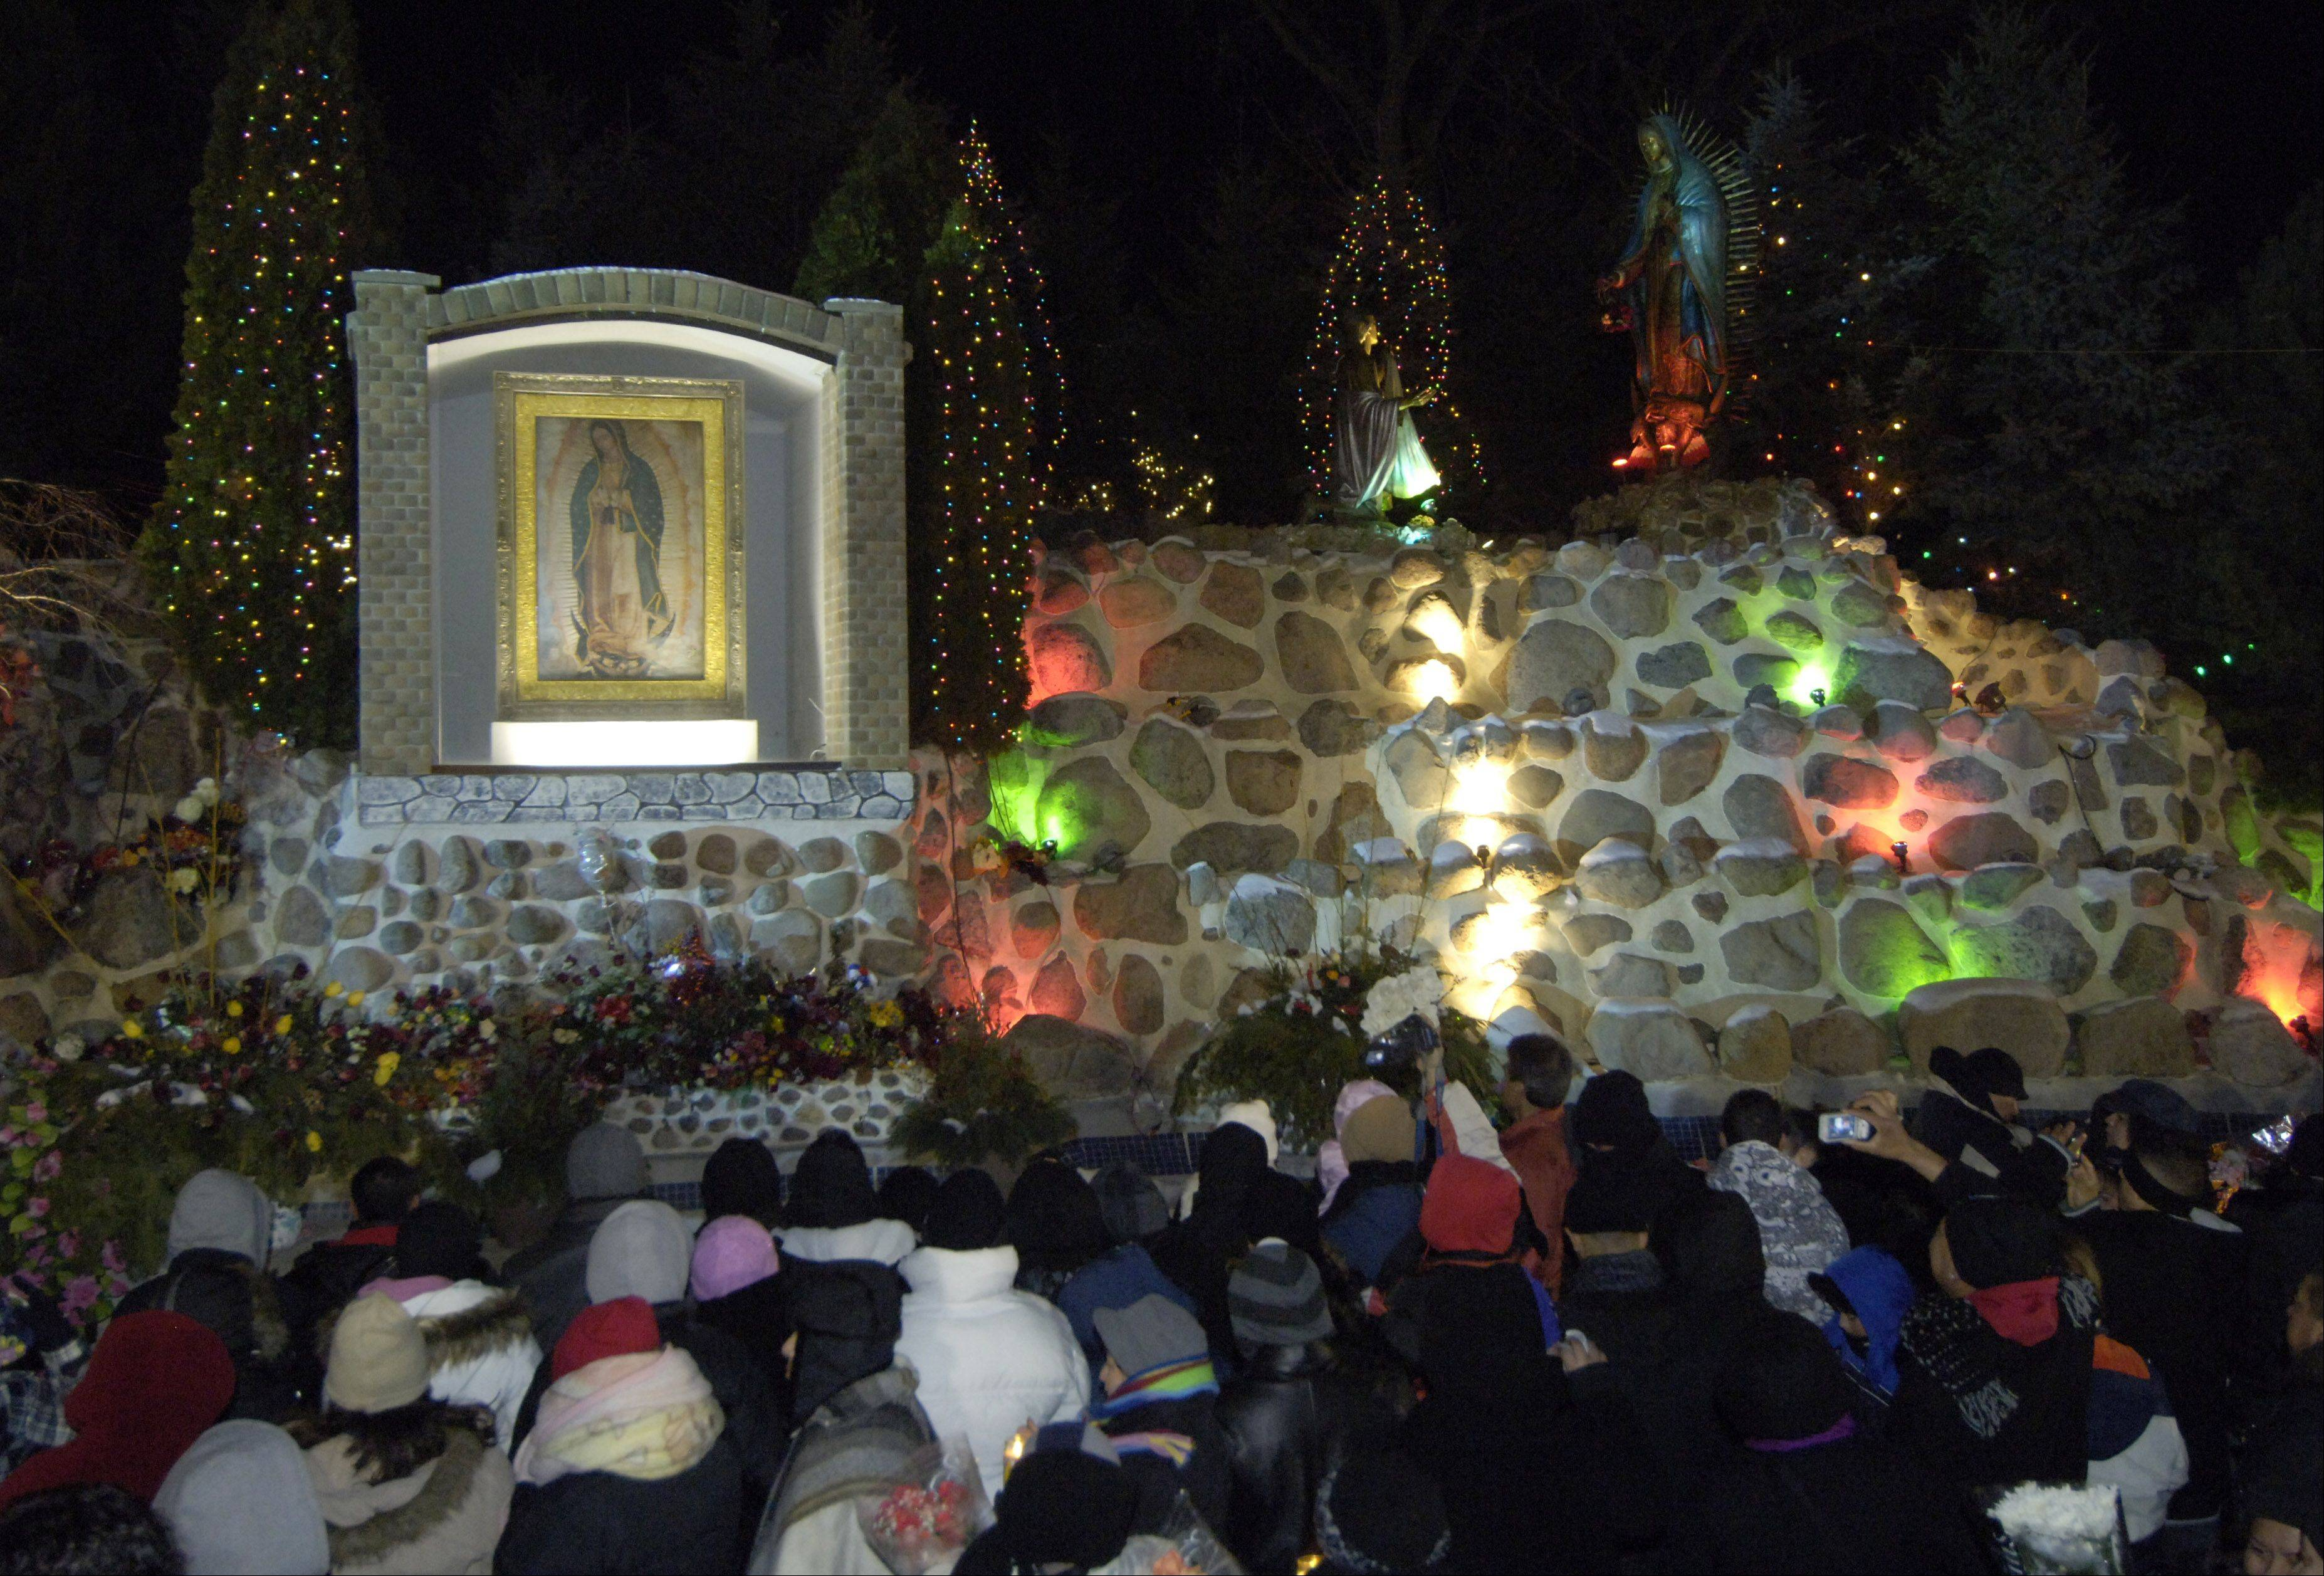 Catholics converge in Des Plaines for Our Lady of Guadalupe celebration